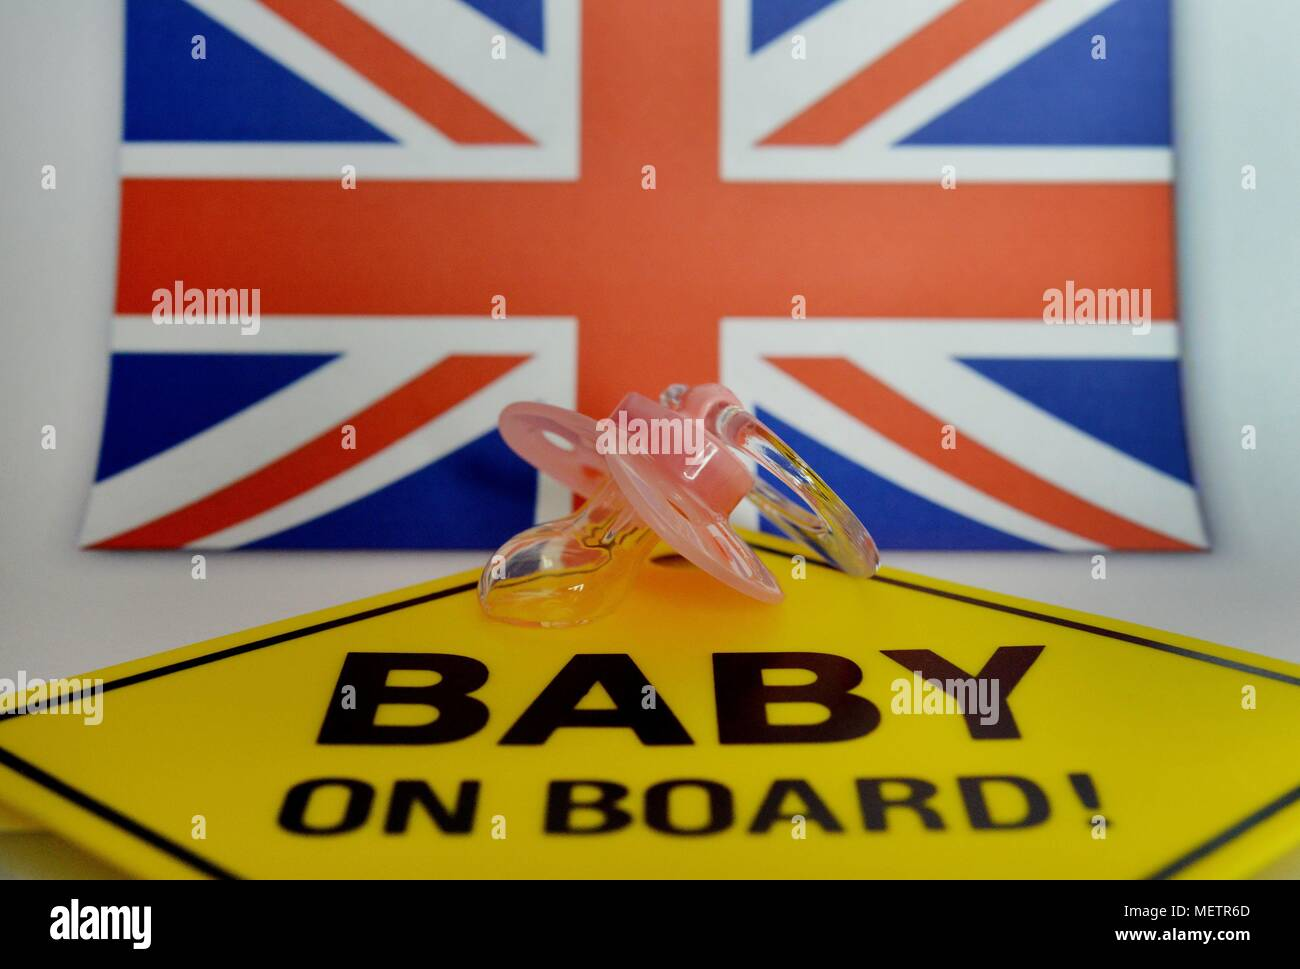 Osterode, Germany. 25th Jan, 2013. A soother is laying in front of the Union Jack. Credit: Frank May | usage worldwide/dpa/Alamy Live News - Stock Image